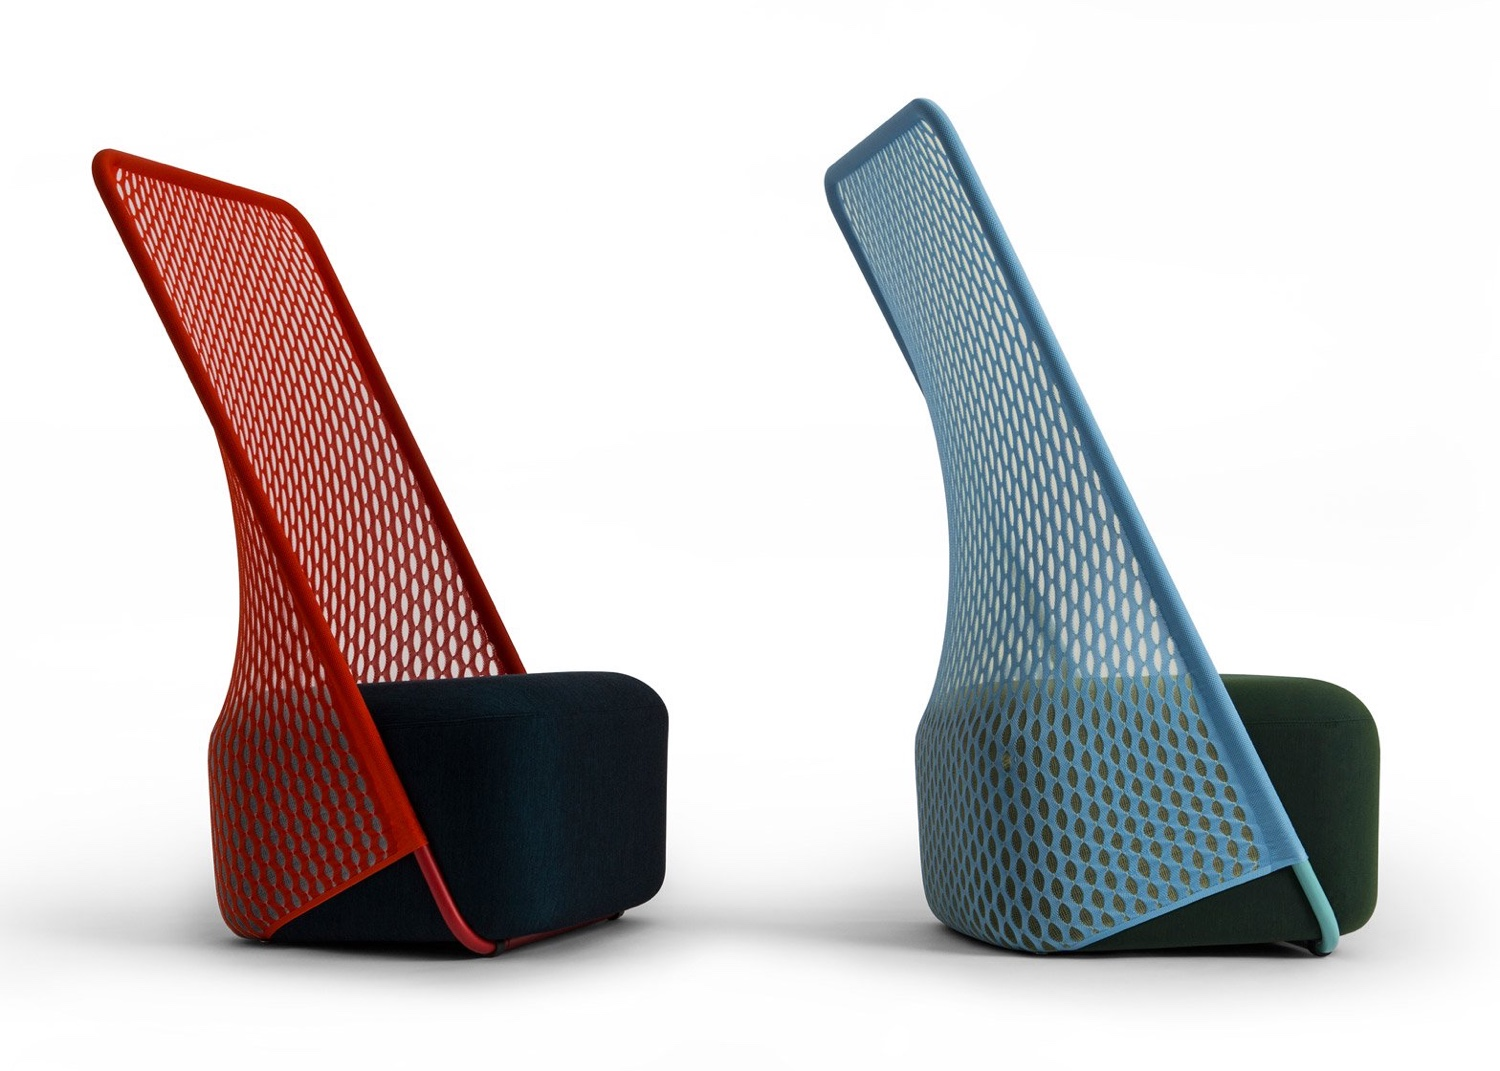 Cradle by Layer Design I